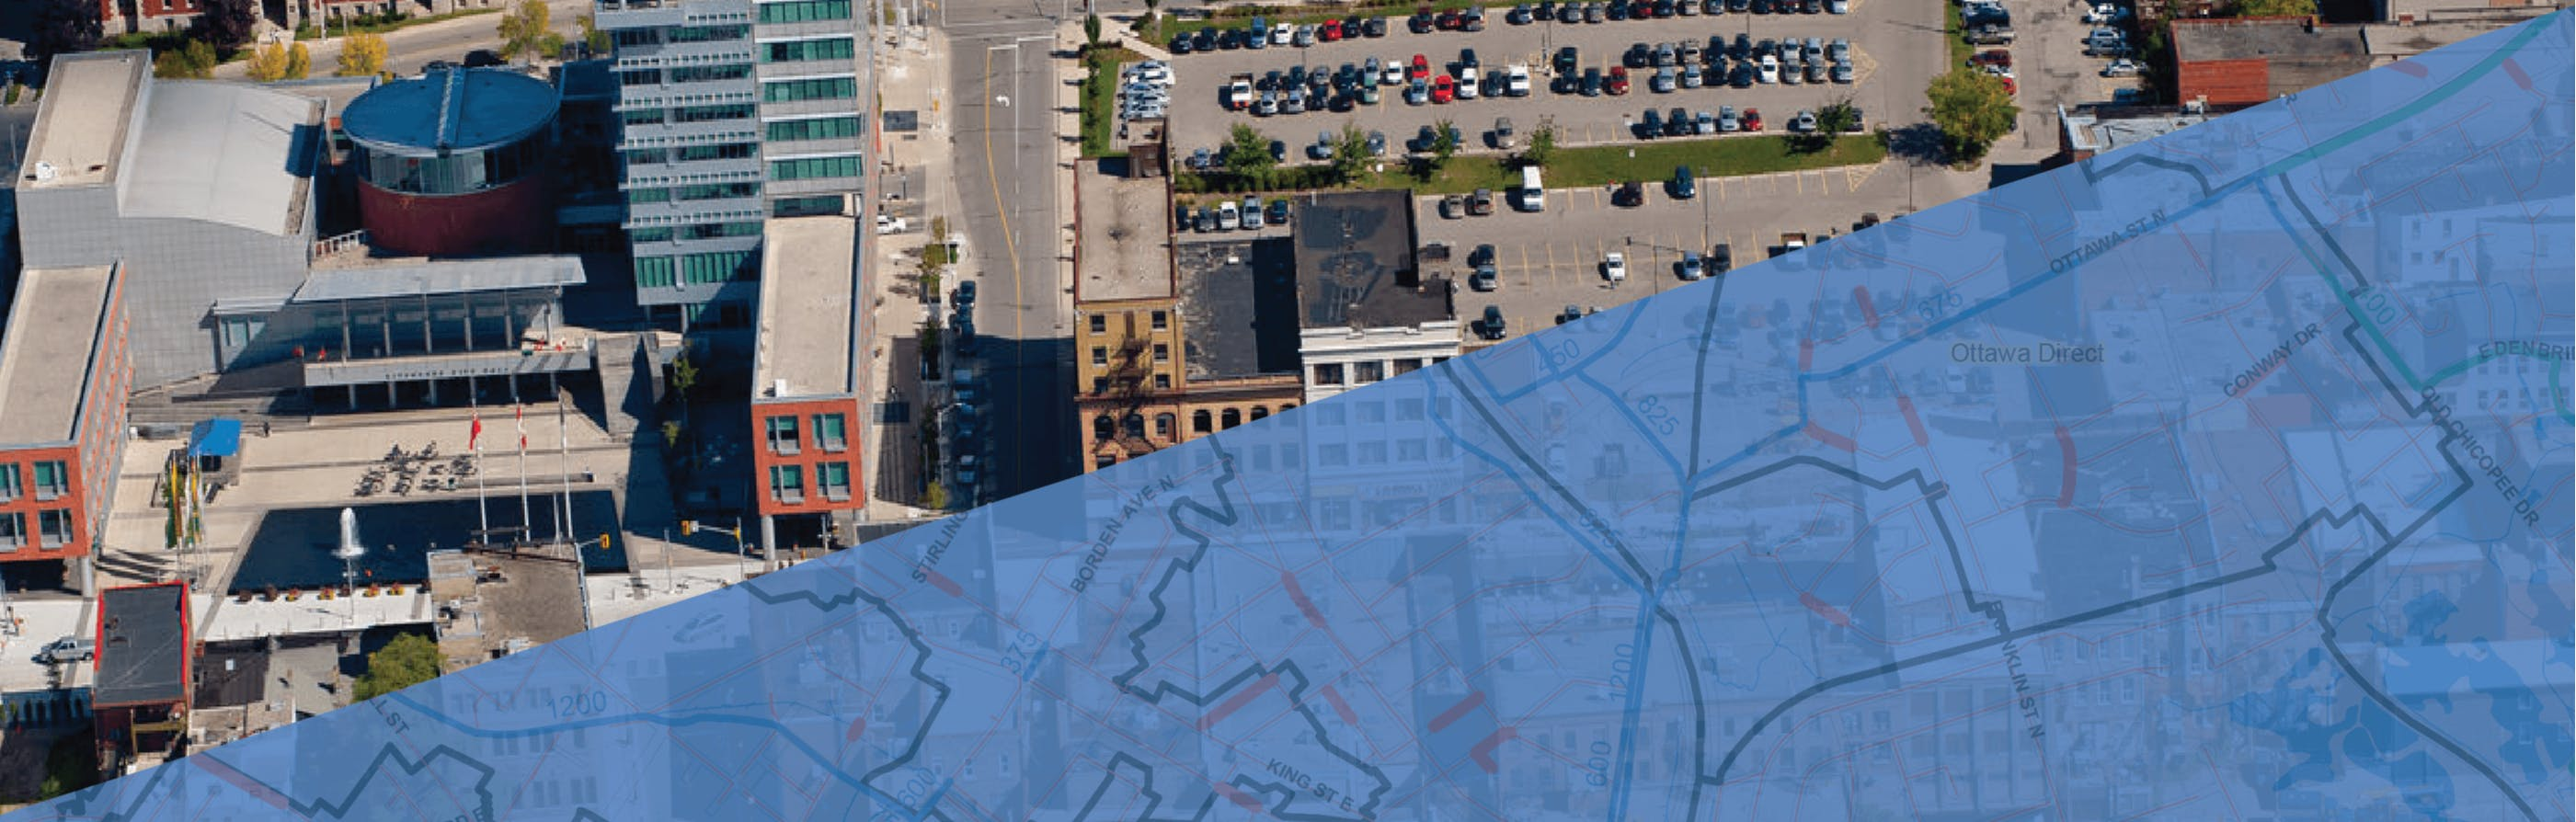 City of Kitchener with sanitary system map overlay